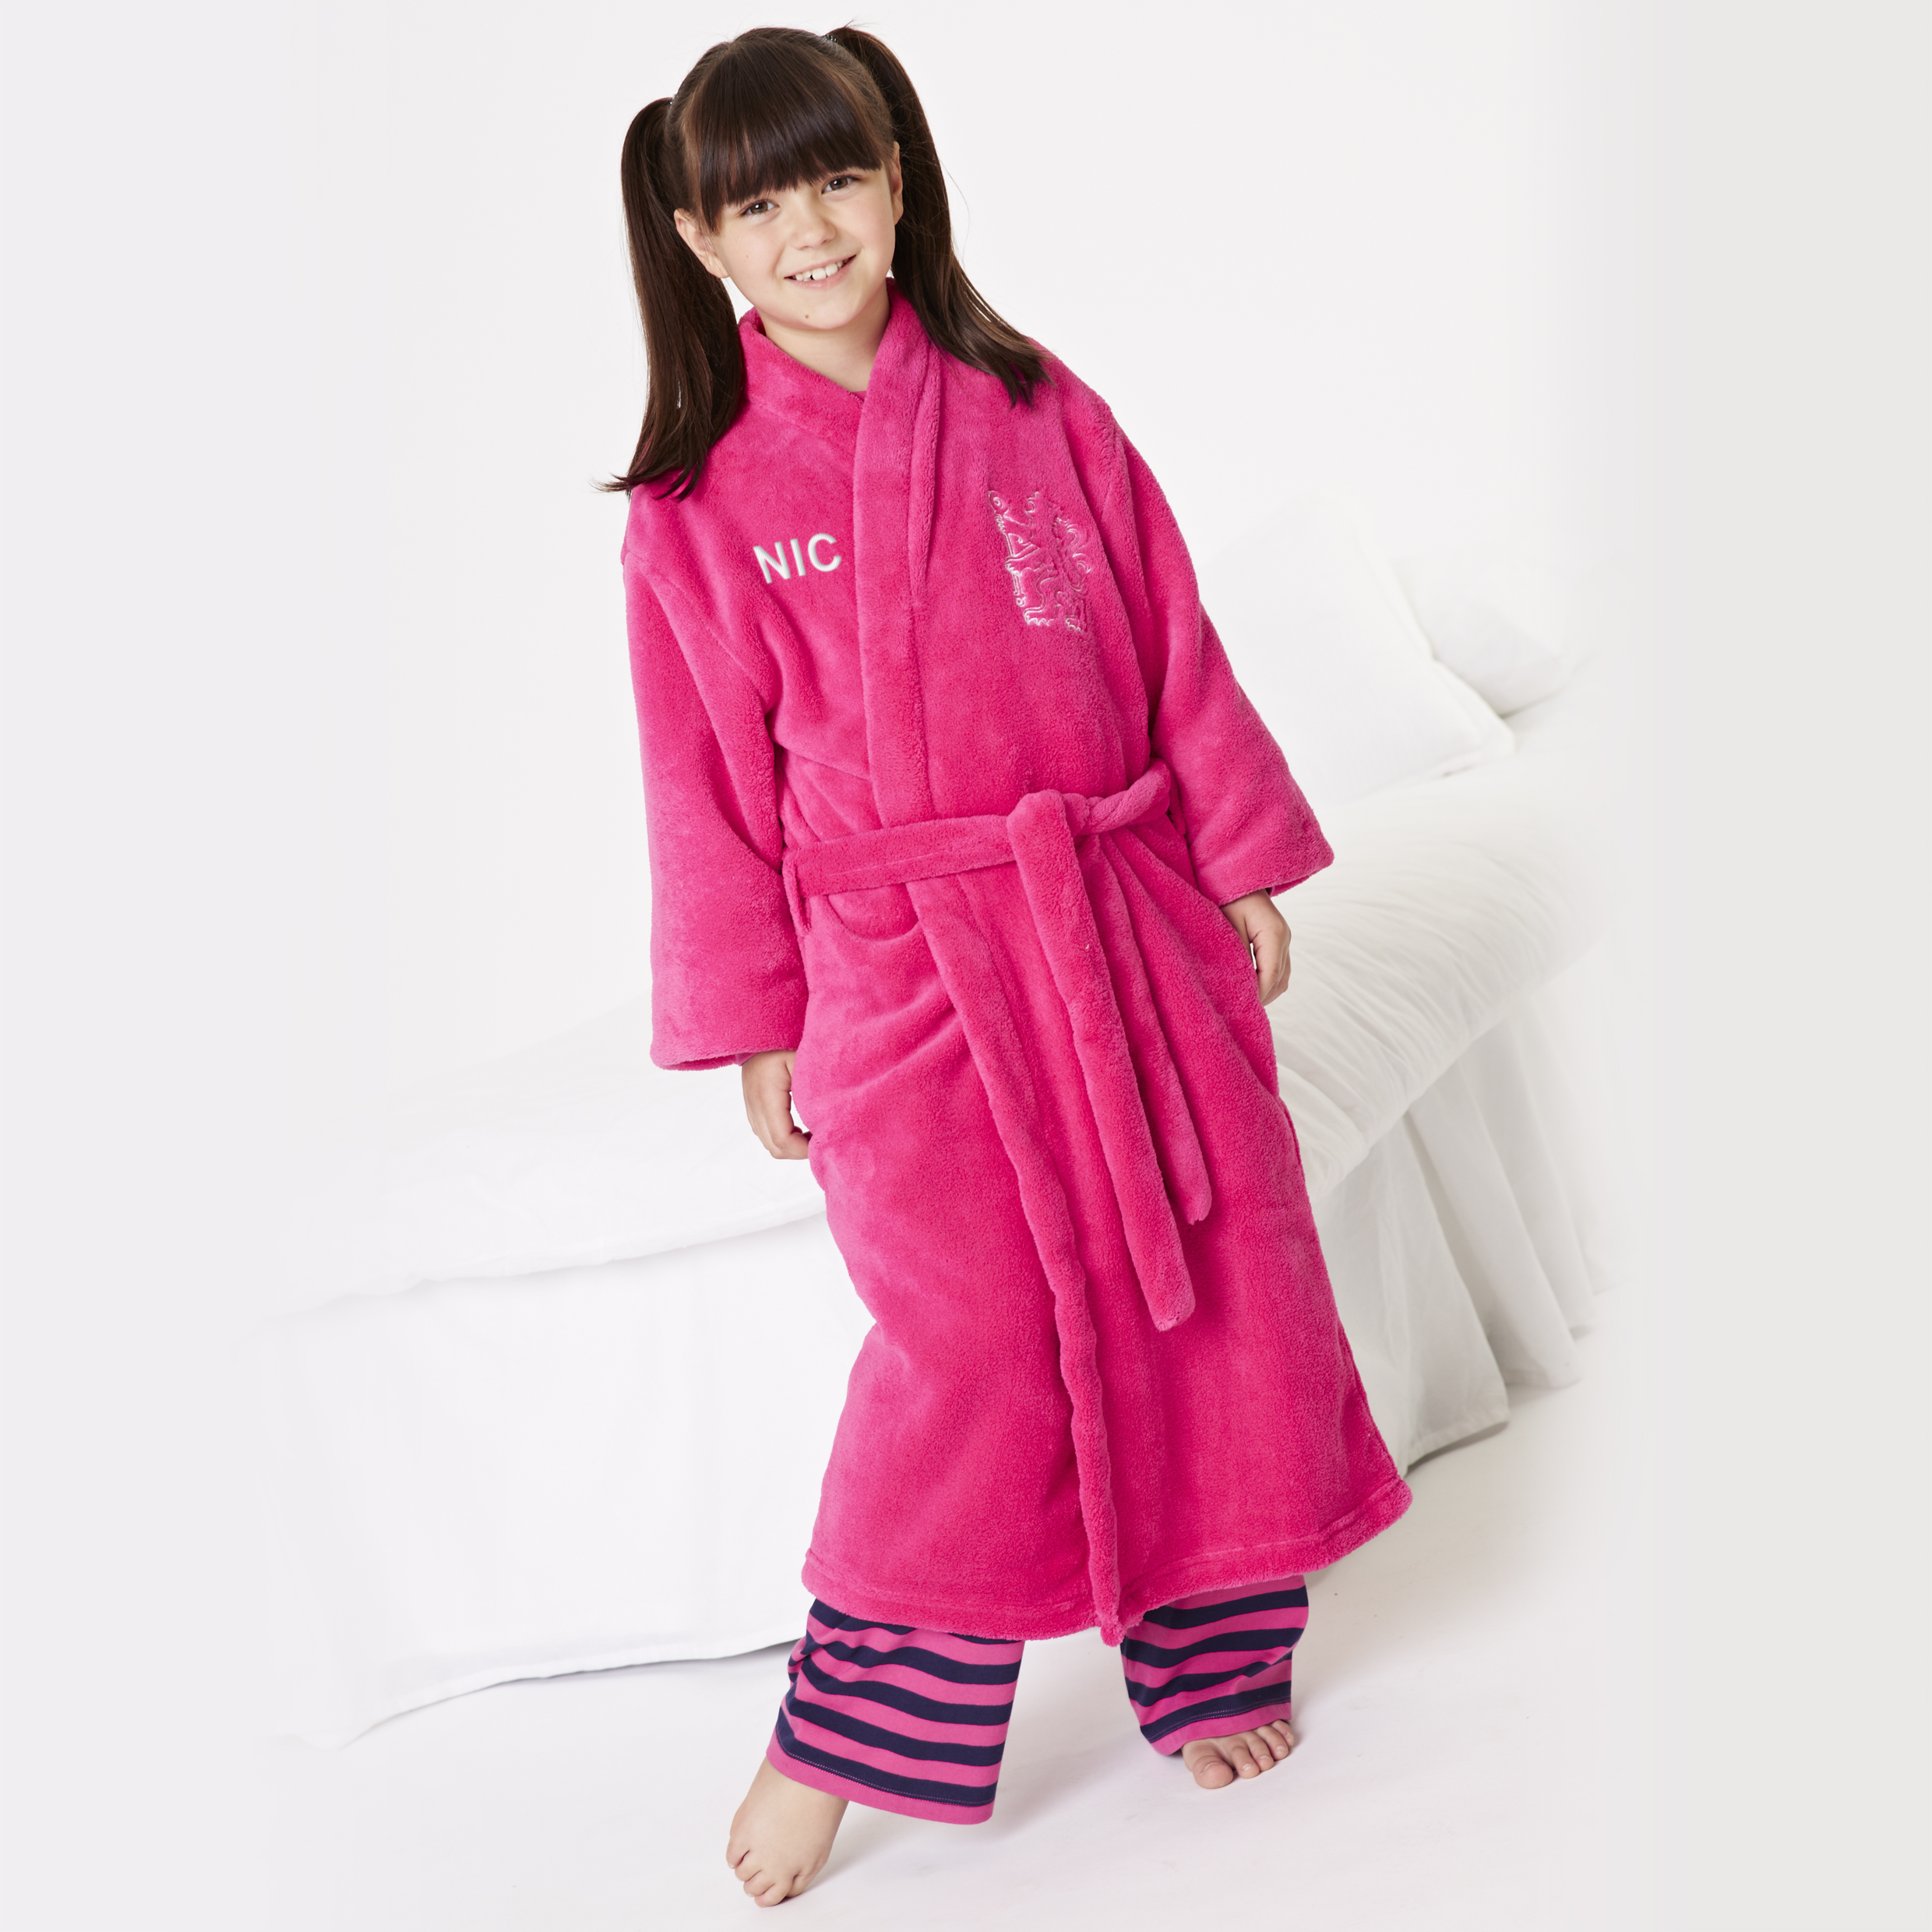 Chelsea Large Lion Robe - Cerise Pink - Older Girls